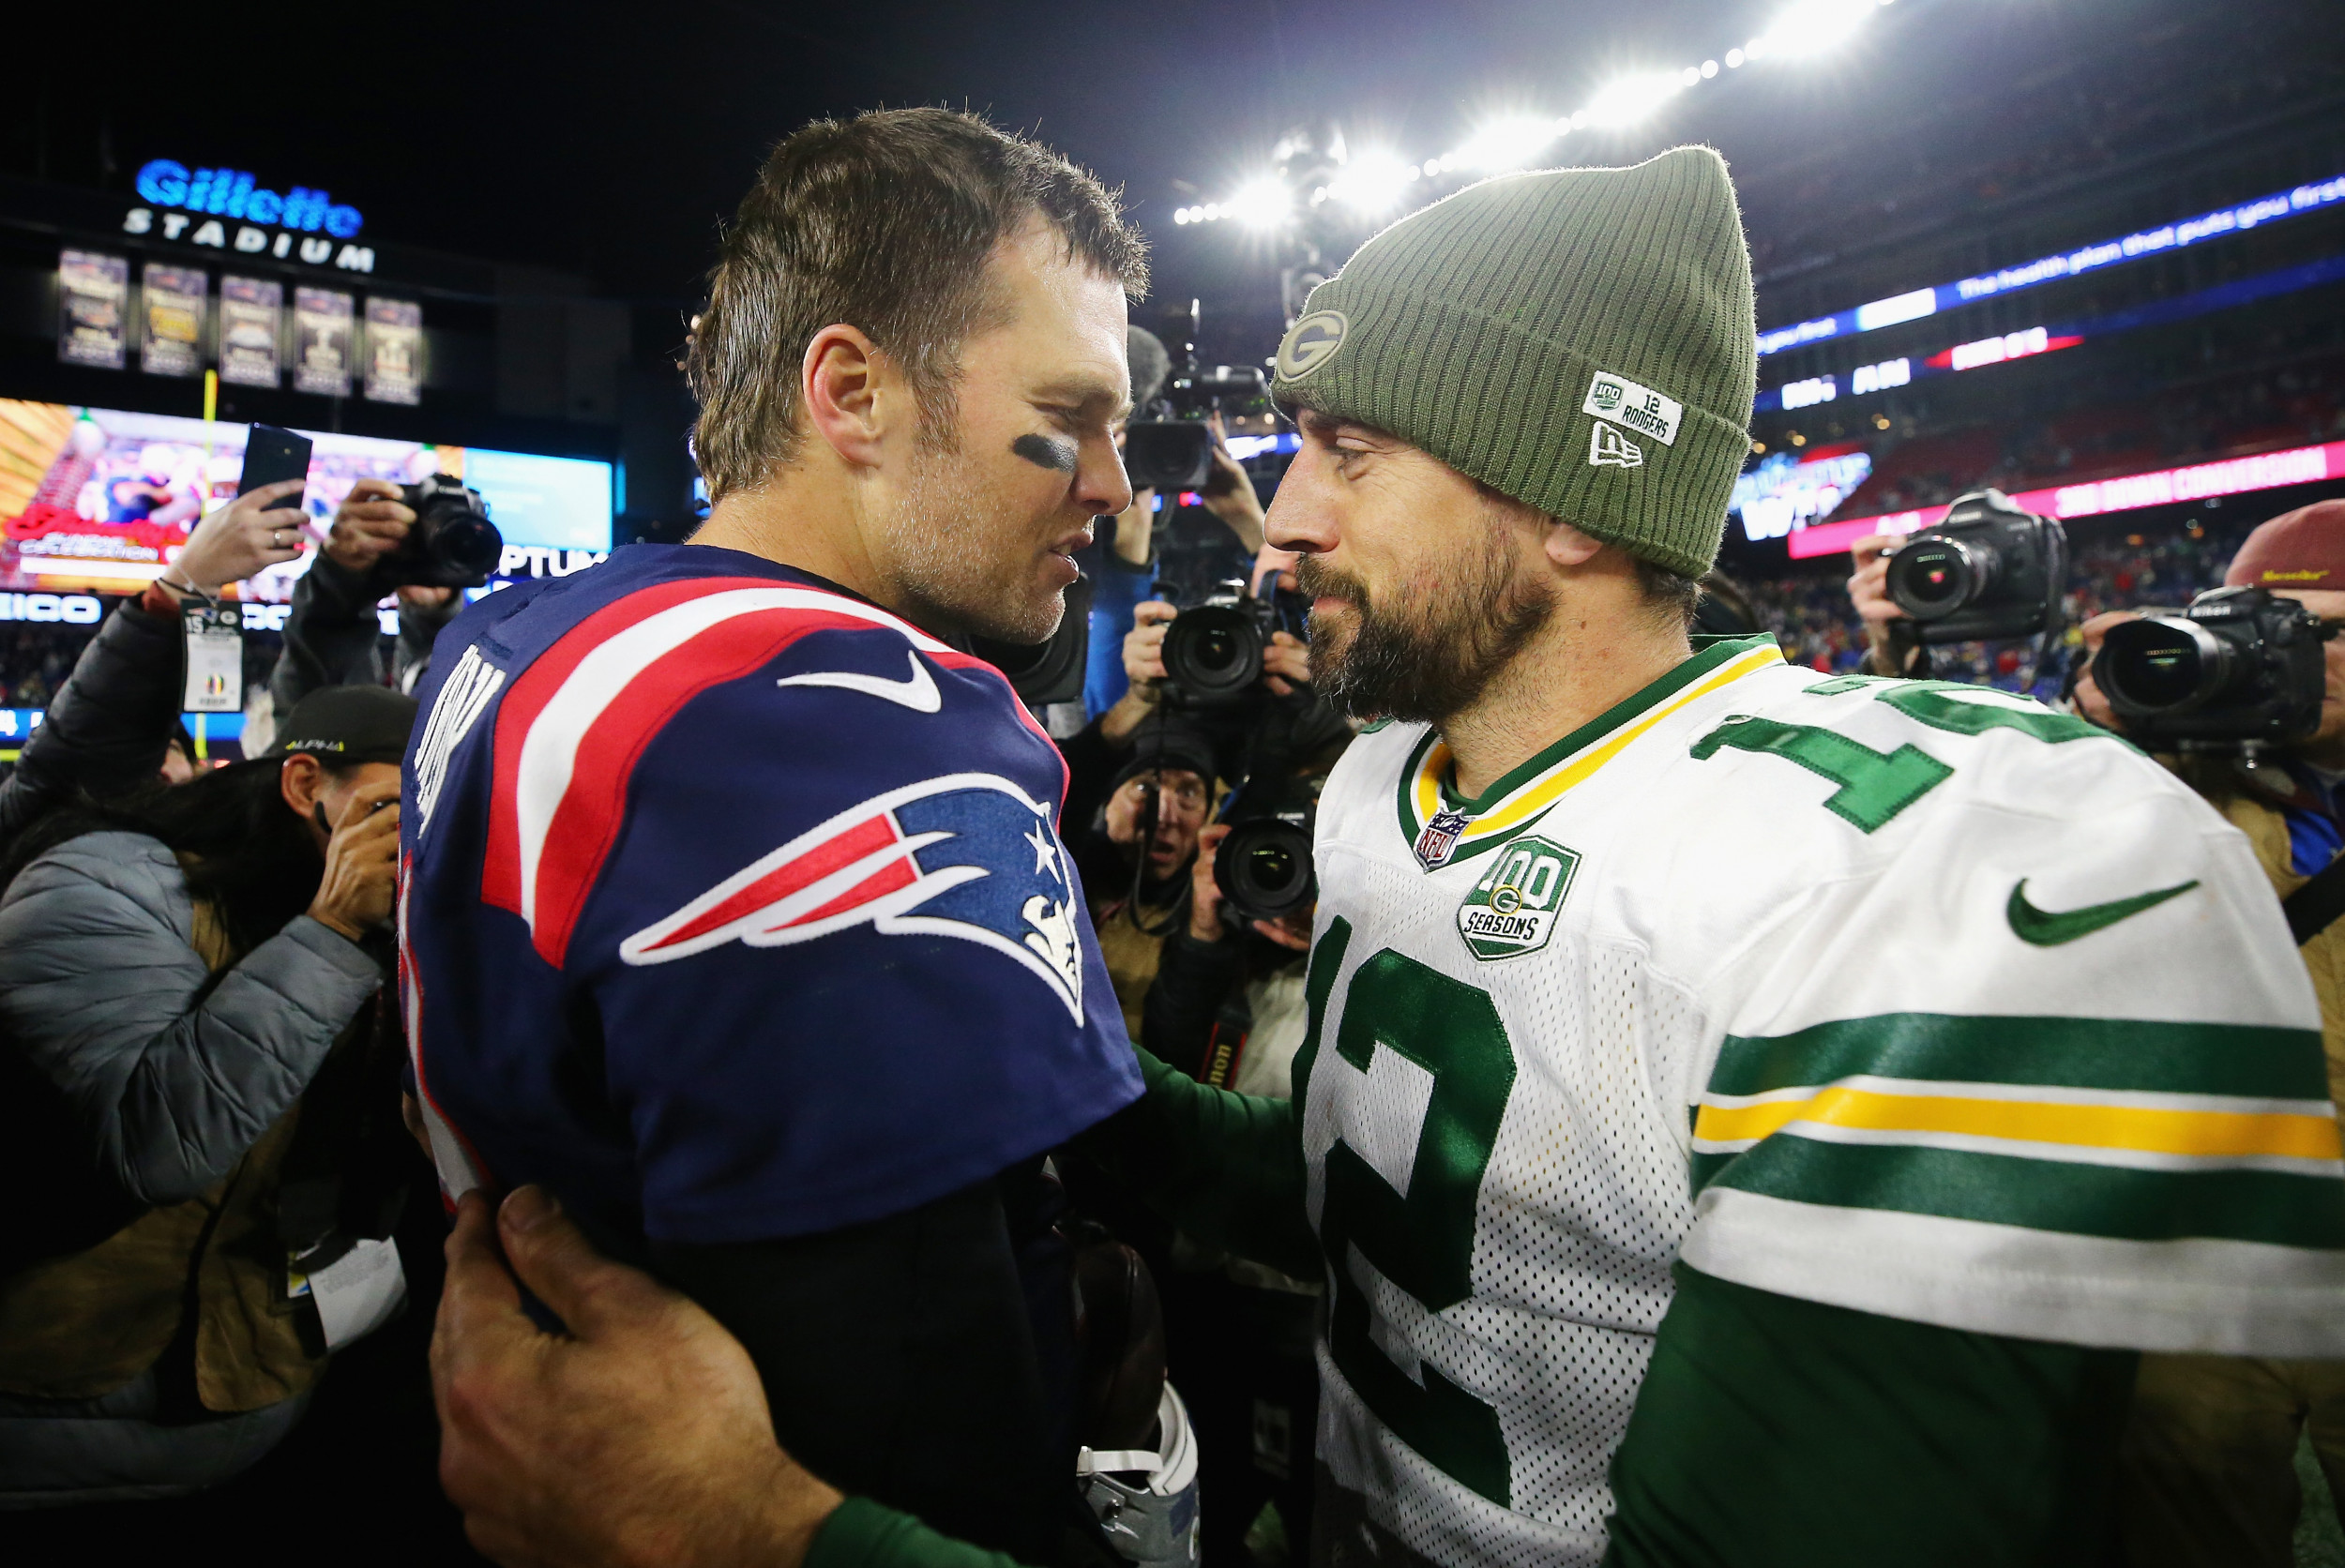 Tom Brady vs. Aaron Rodgers—What happened in their three previous meetings